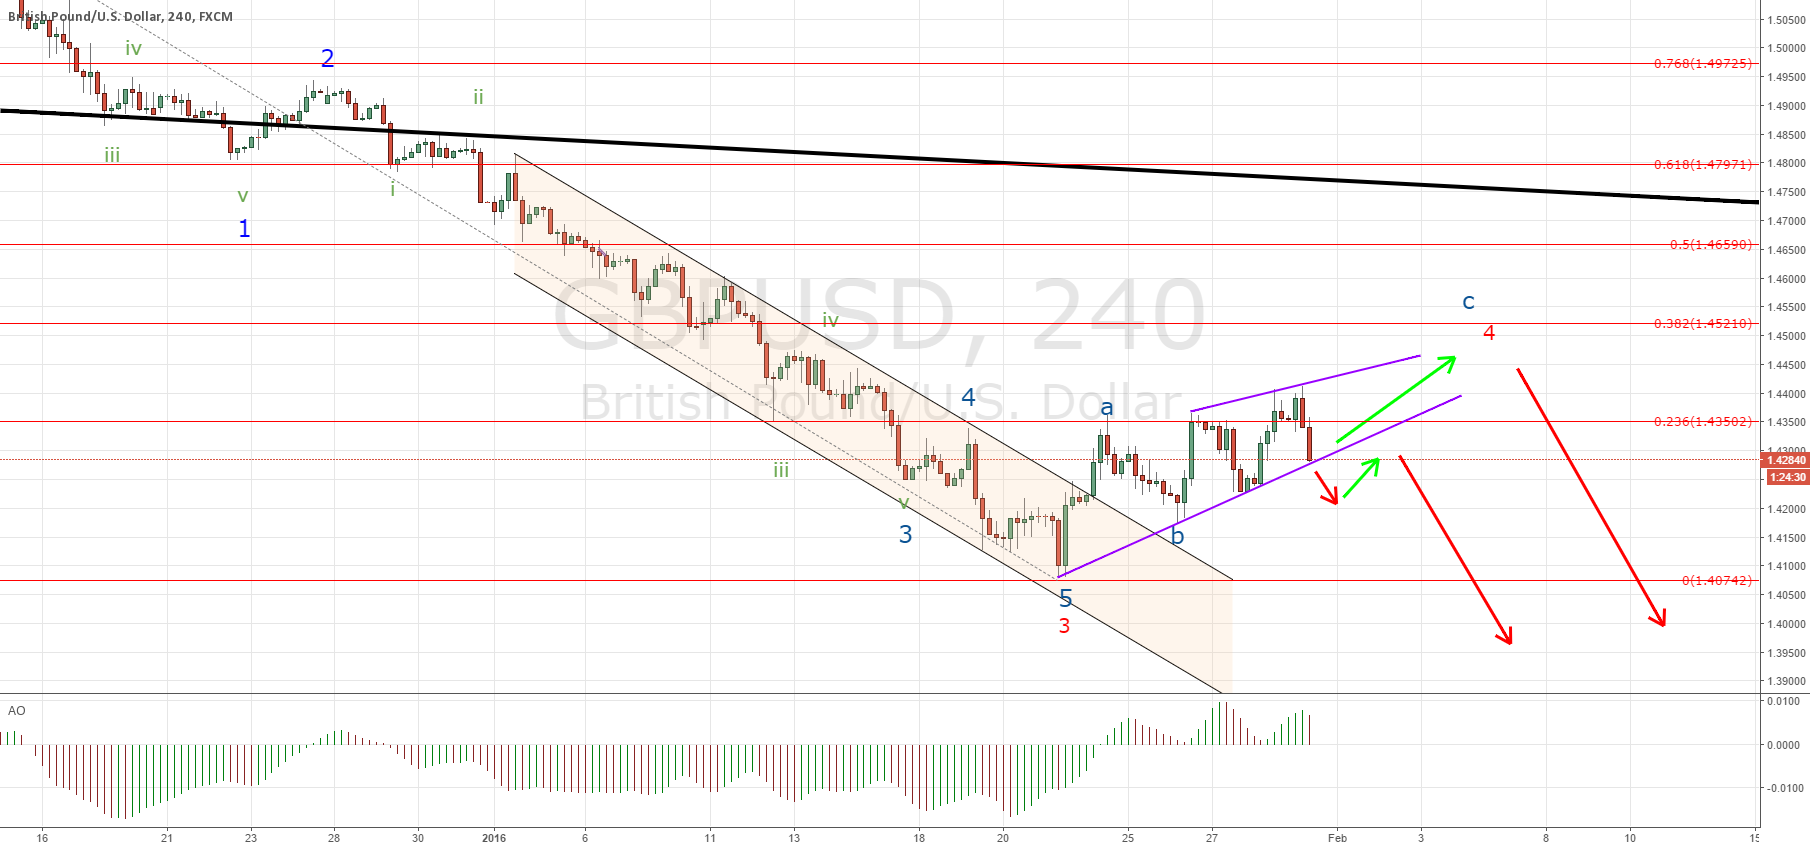 GBPUSD a last leg higher needed?